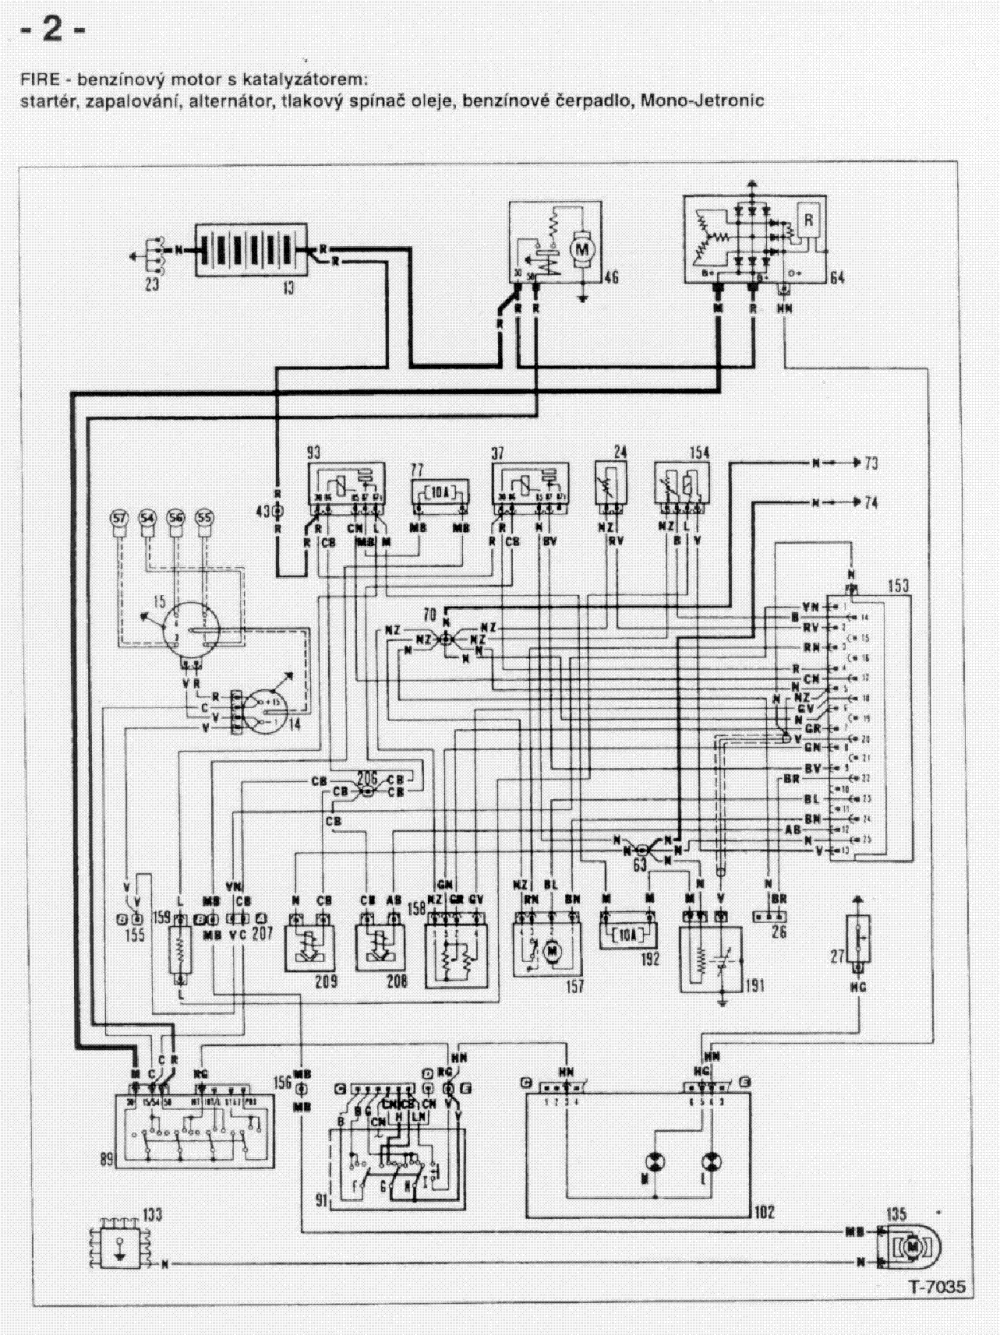 medium resolution of fiat uno 1100 wiring diagram wiring diagram schematic fiat punto electrical wiring diagram fiat uno electrical wiring diagram